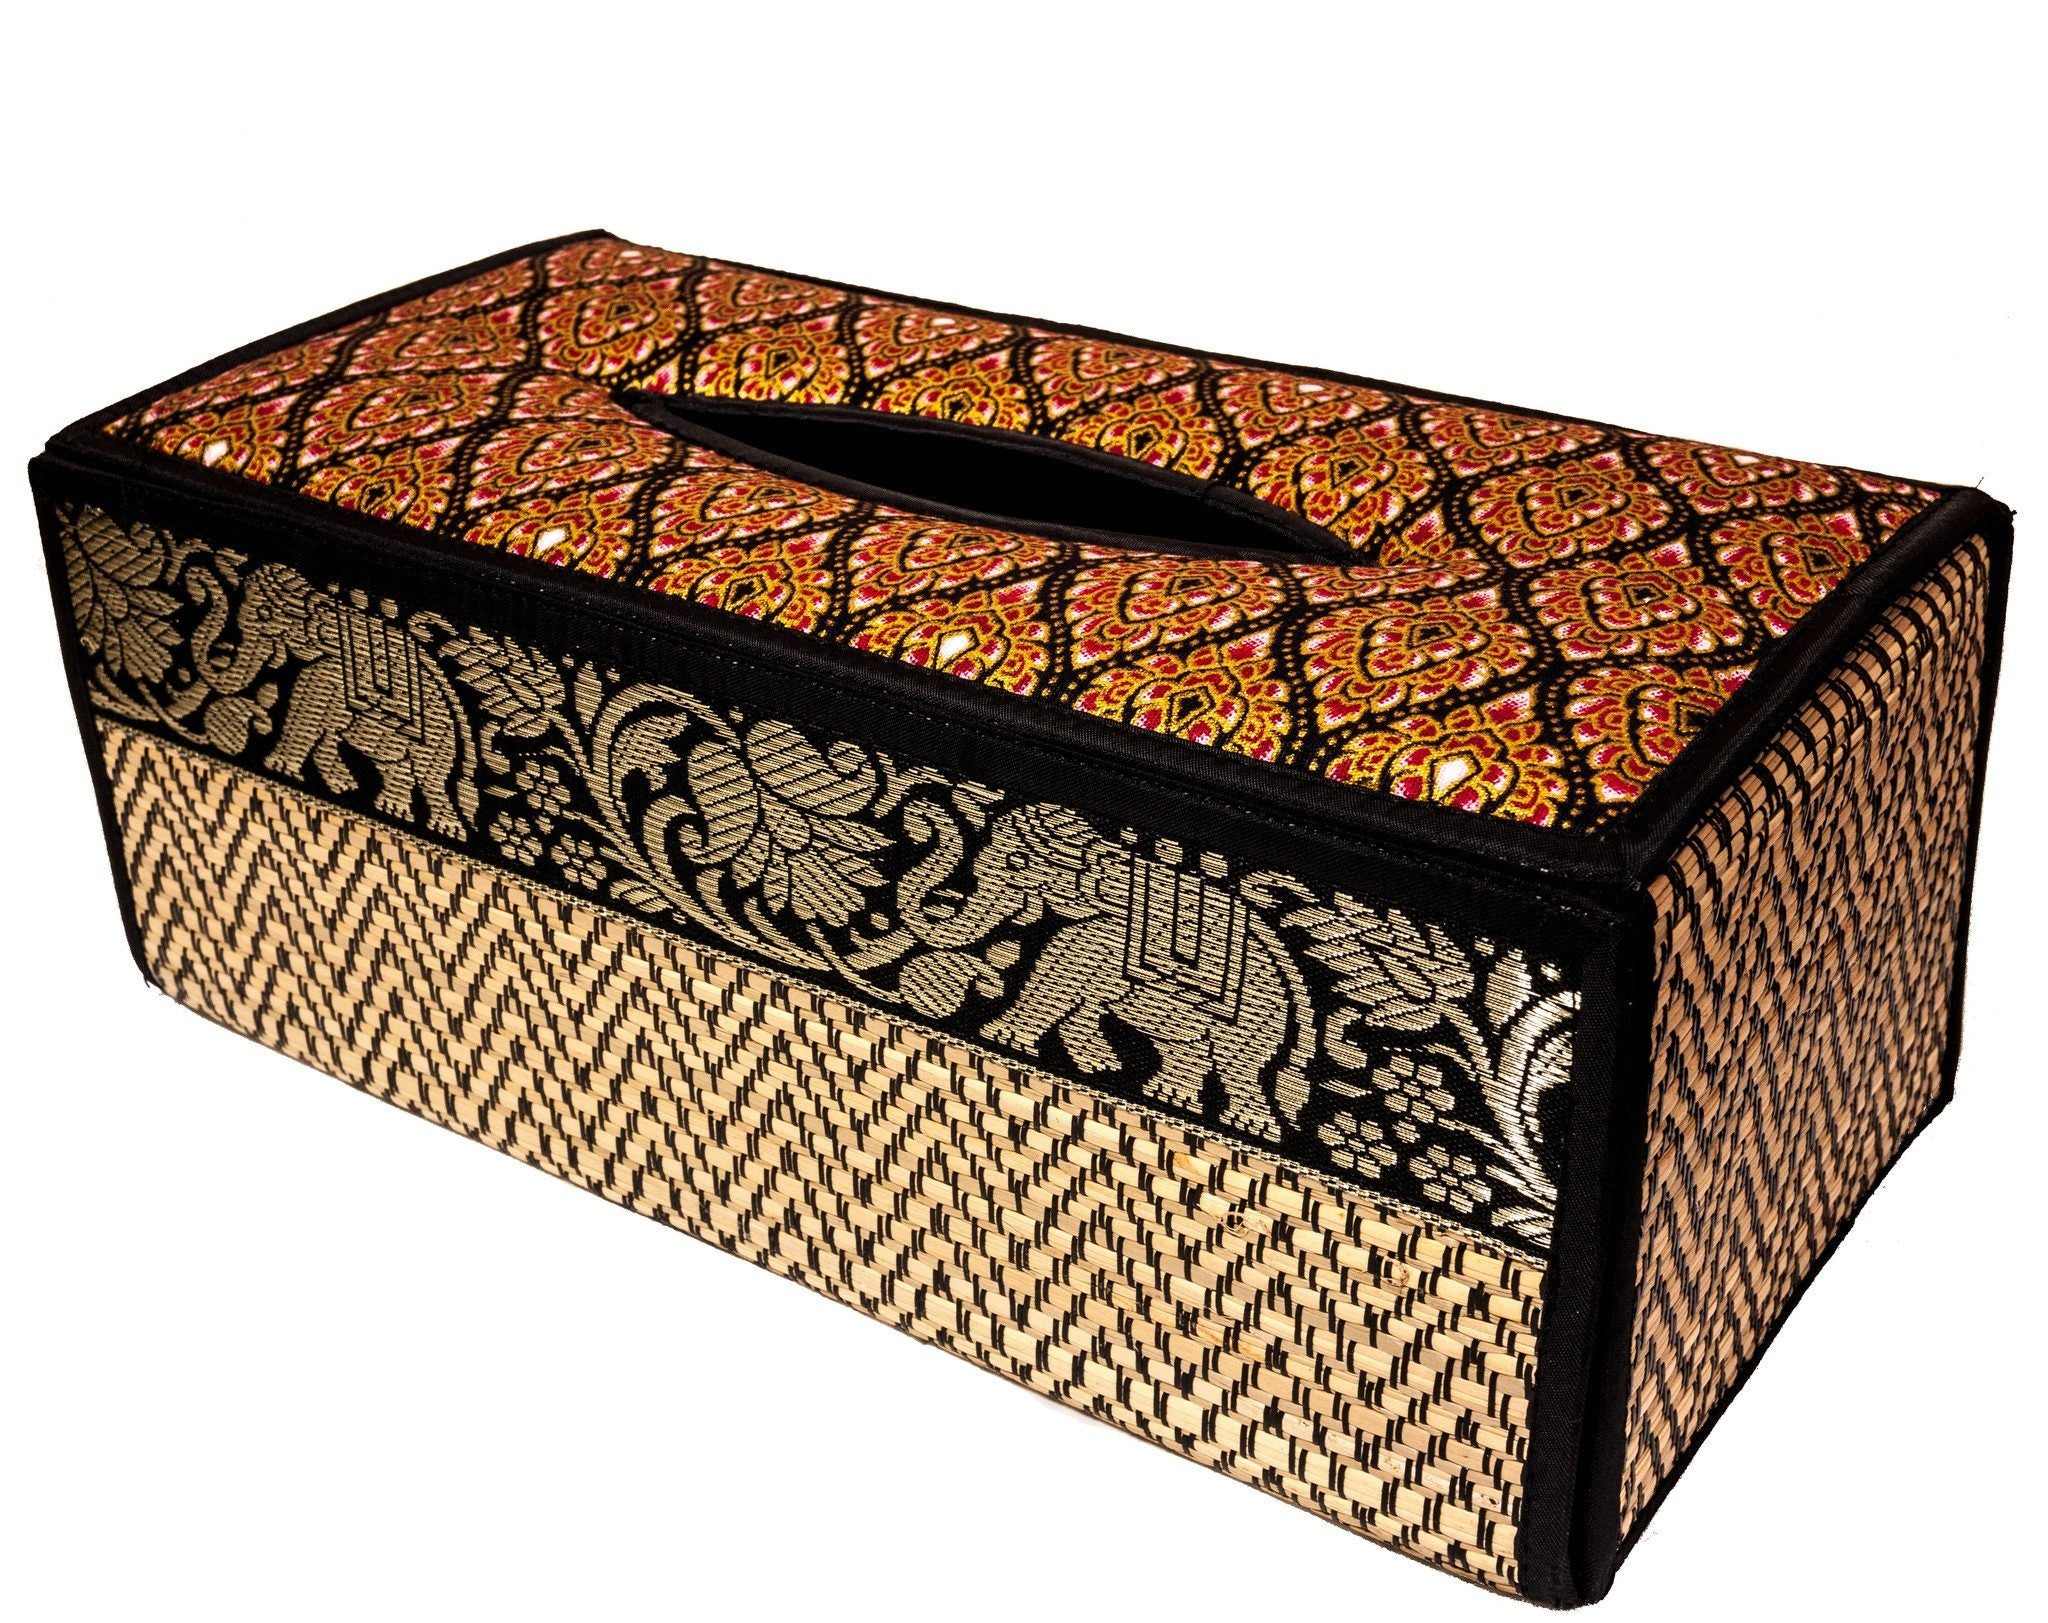 Reed TISSUE BOX cover case - CCCollections